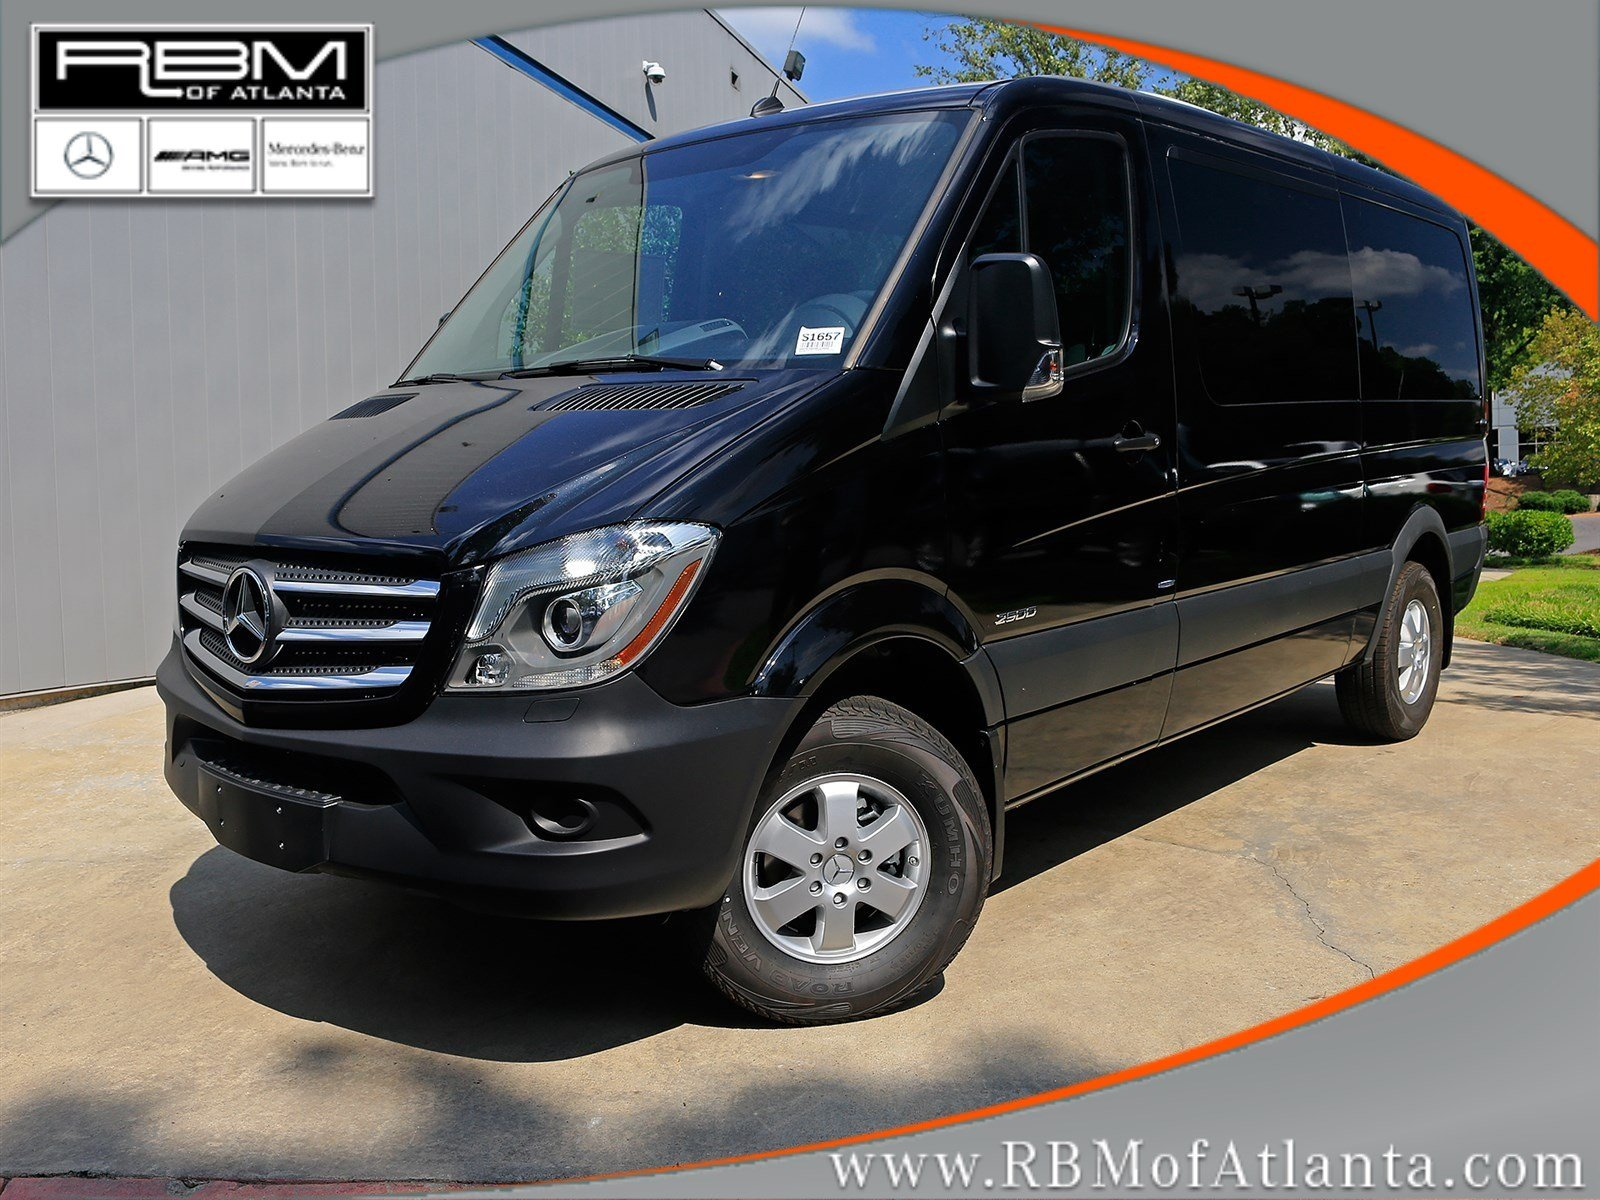 New 2016 mercedes benz sprinter 2500 passenger van full for Mercedes benz mechanic jobs